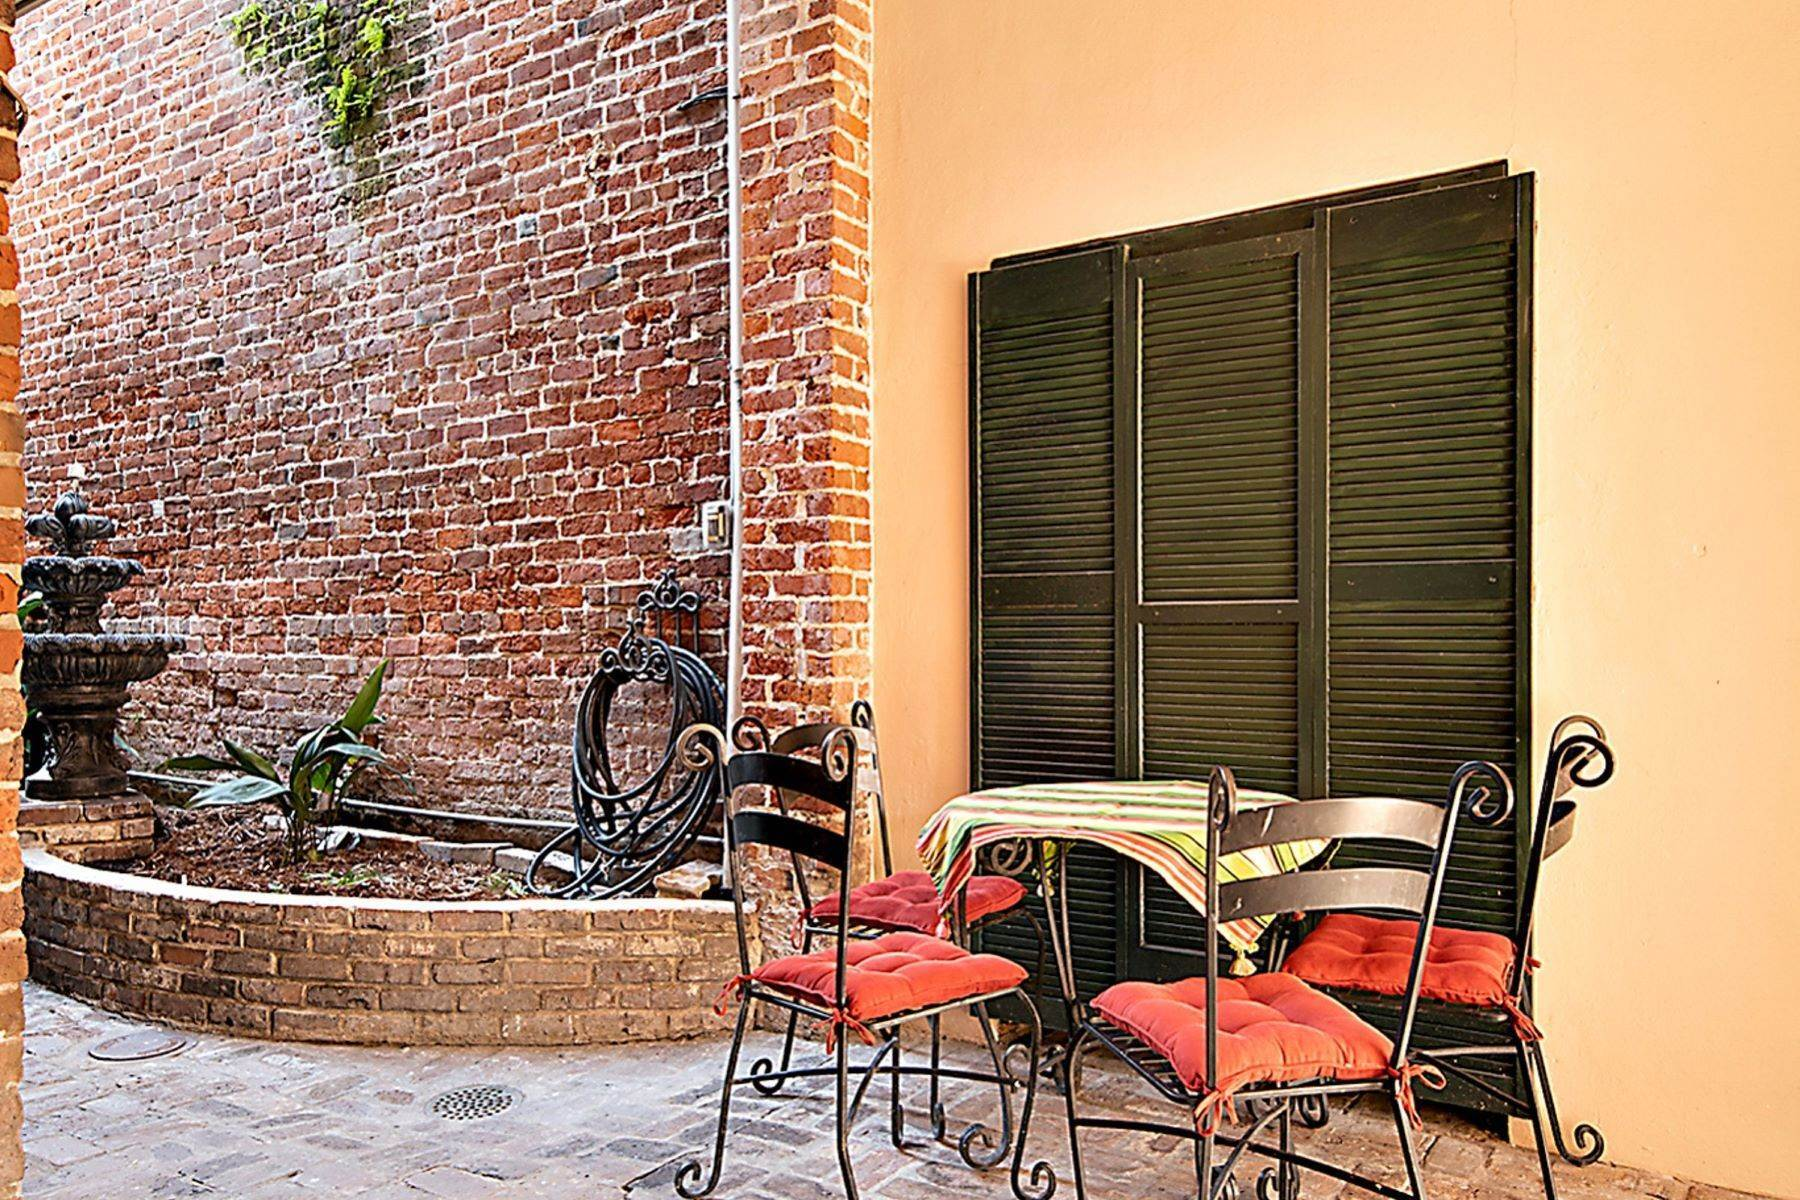 11. Condominiums for Sale at 407 Burgundy Street, Unit 2 407 Burgundy St, Unit 2 New Orleans, Louisiana 70112 United States